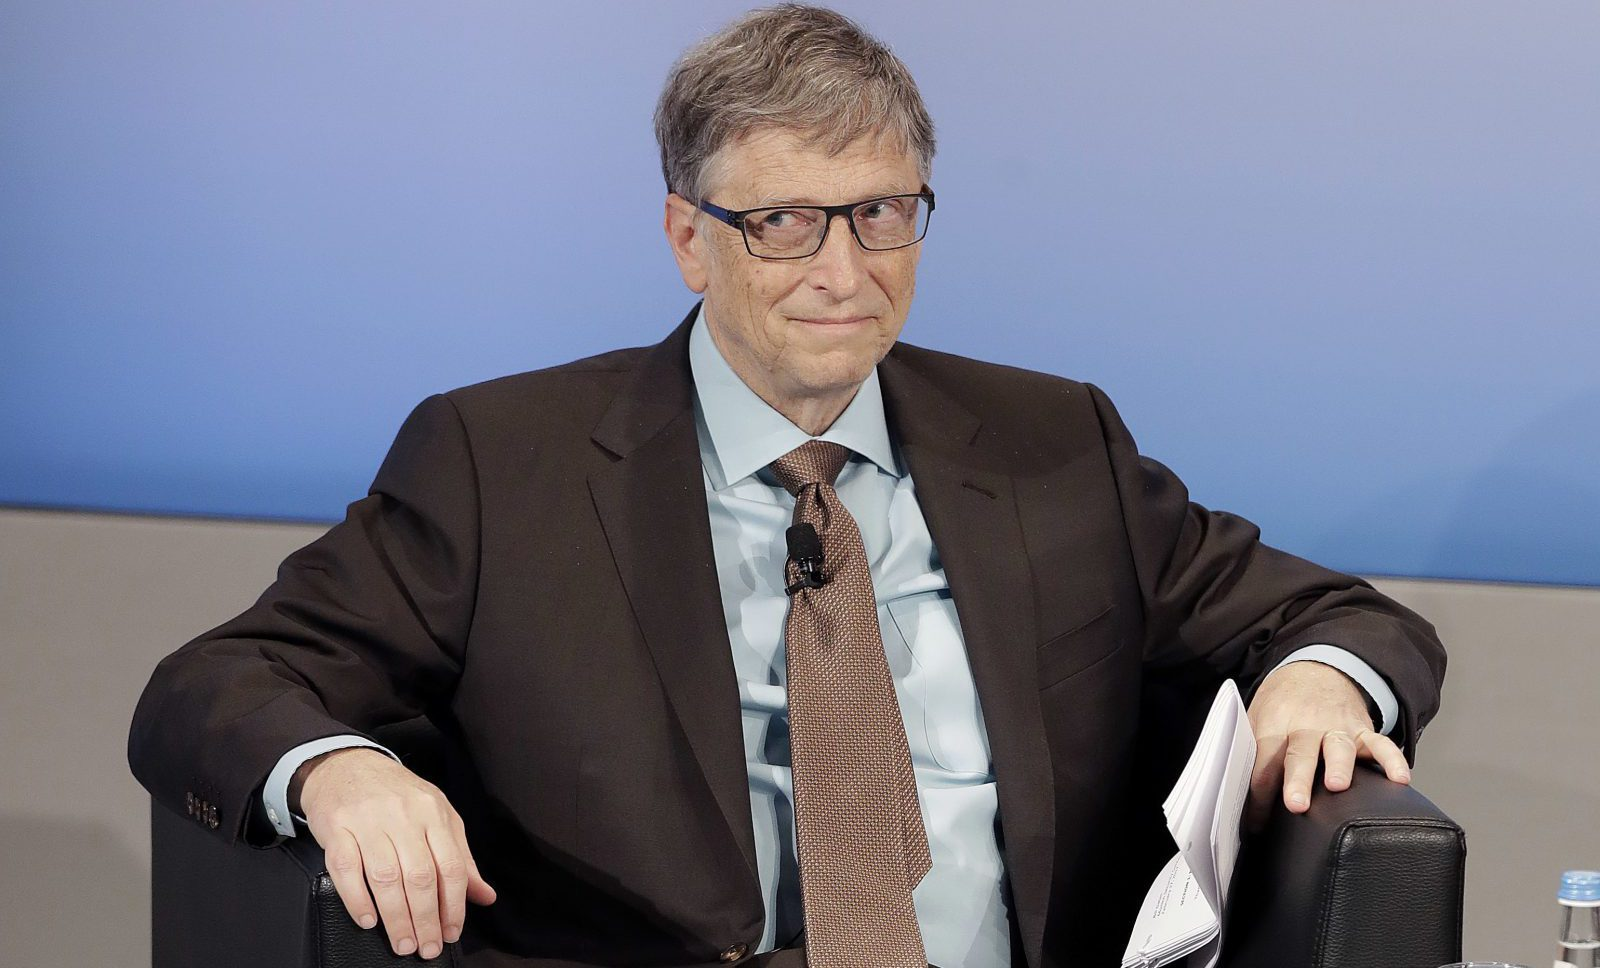 Microsoft founder Bill Gates sits in his chair during the Munich Security Conference in Munich, Germany, Saturday, Feb. 18, 2017. The annual weekend gathering is known for providing an open and informal platform to meet in close quarters. (AP Photo/Matthias Schrader)